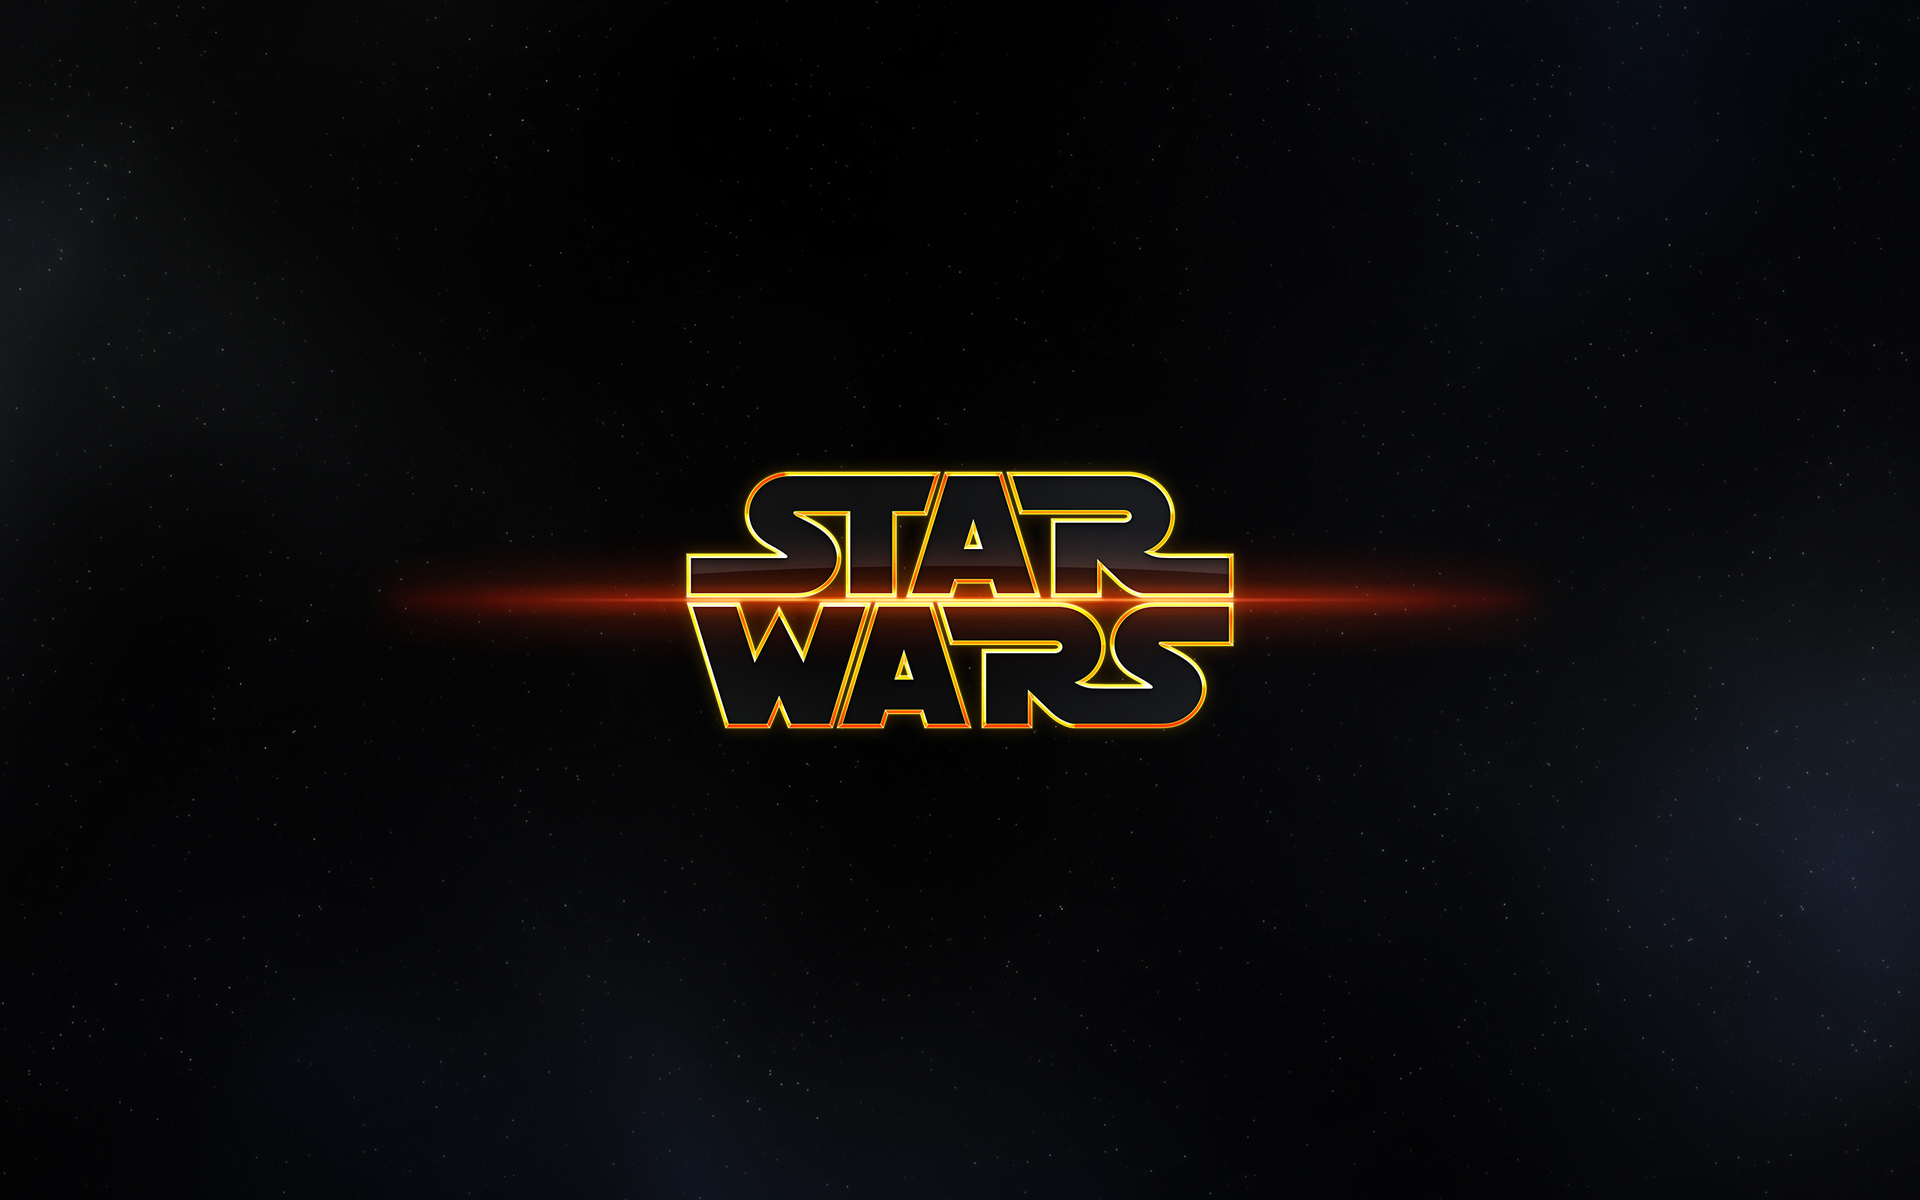 Star Wars Logo Wallpaper